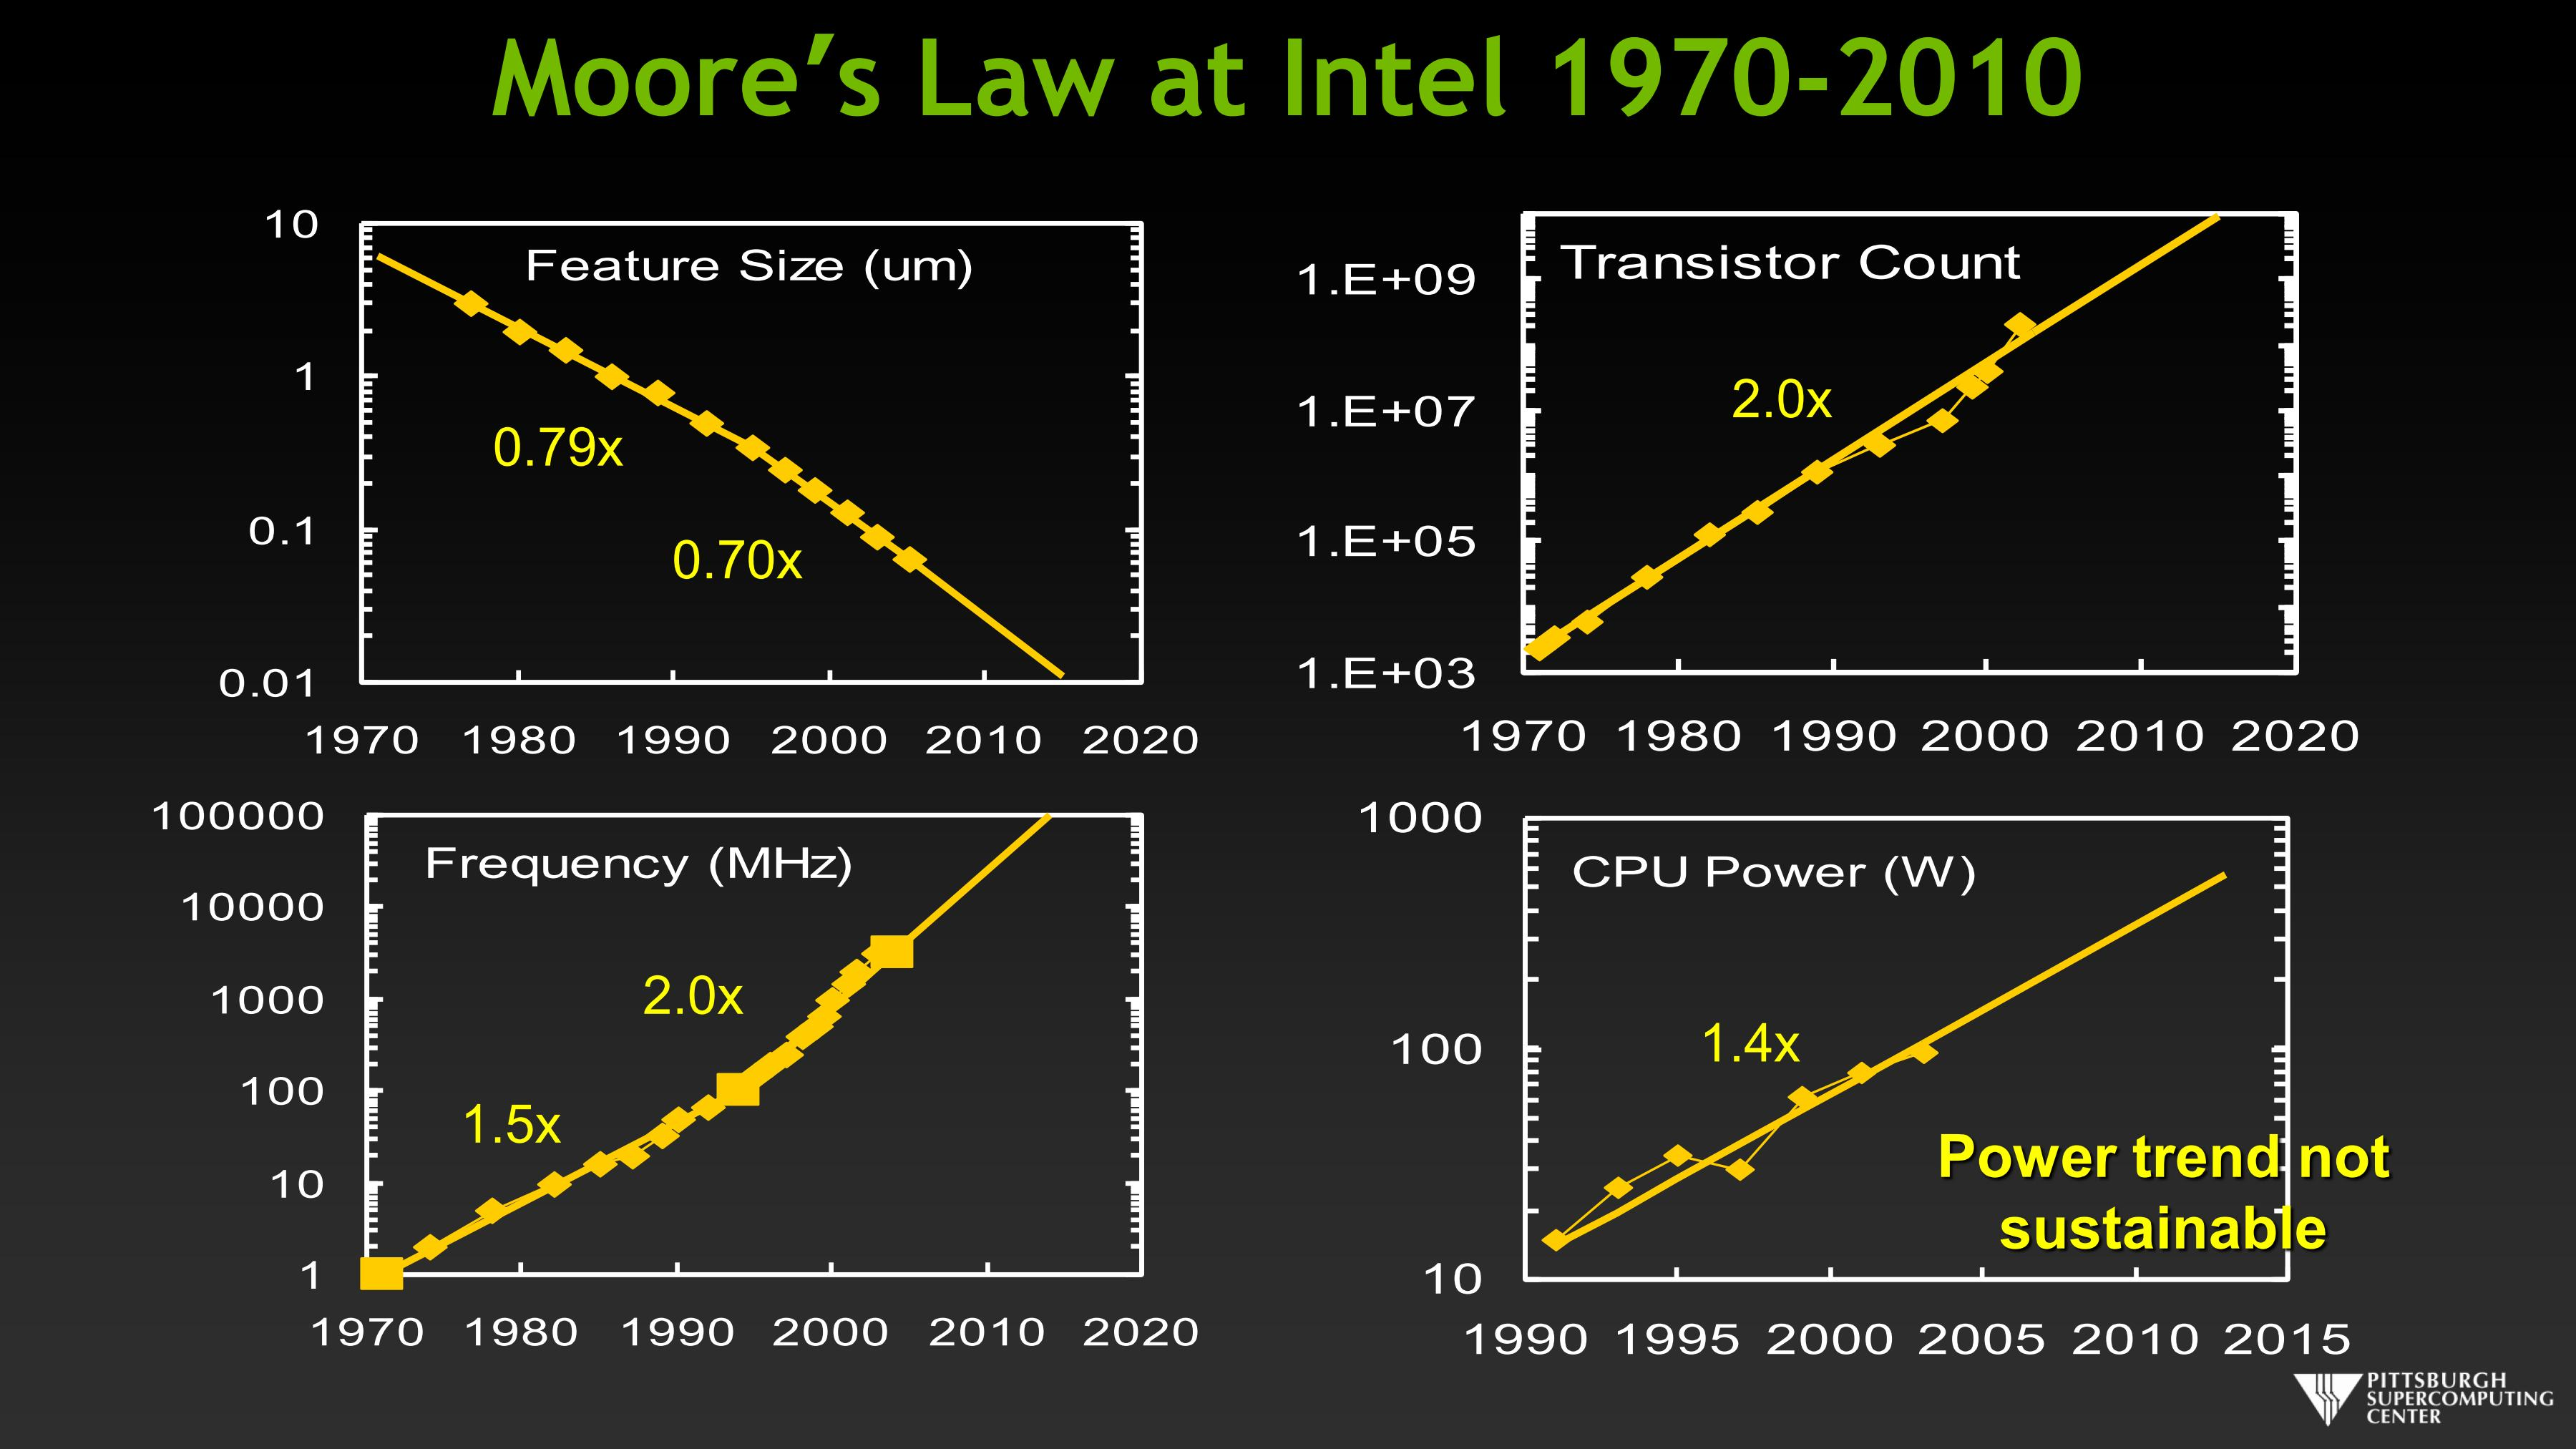 Moore's Law at Intel 1970-2010